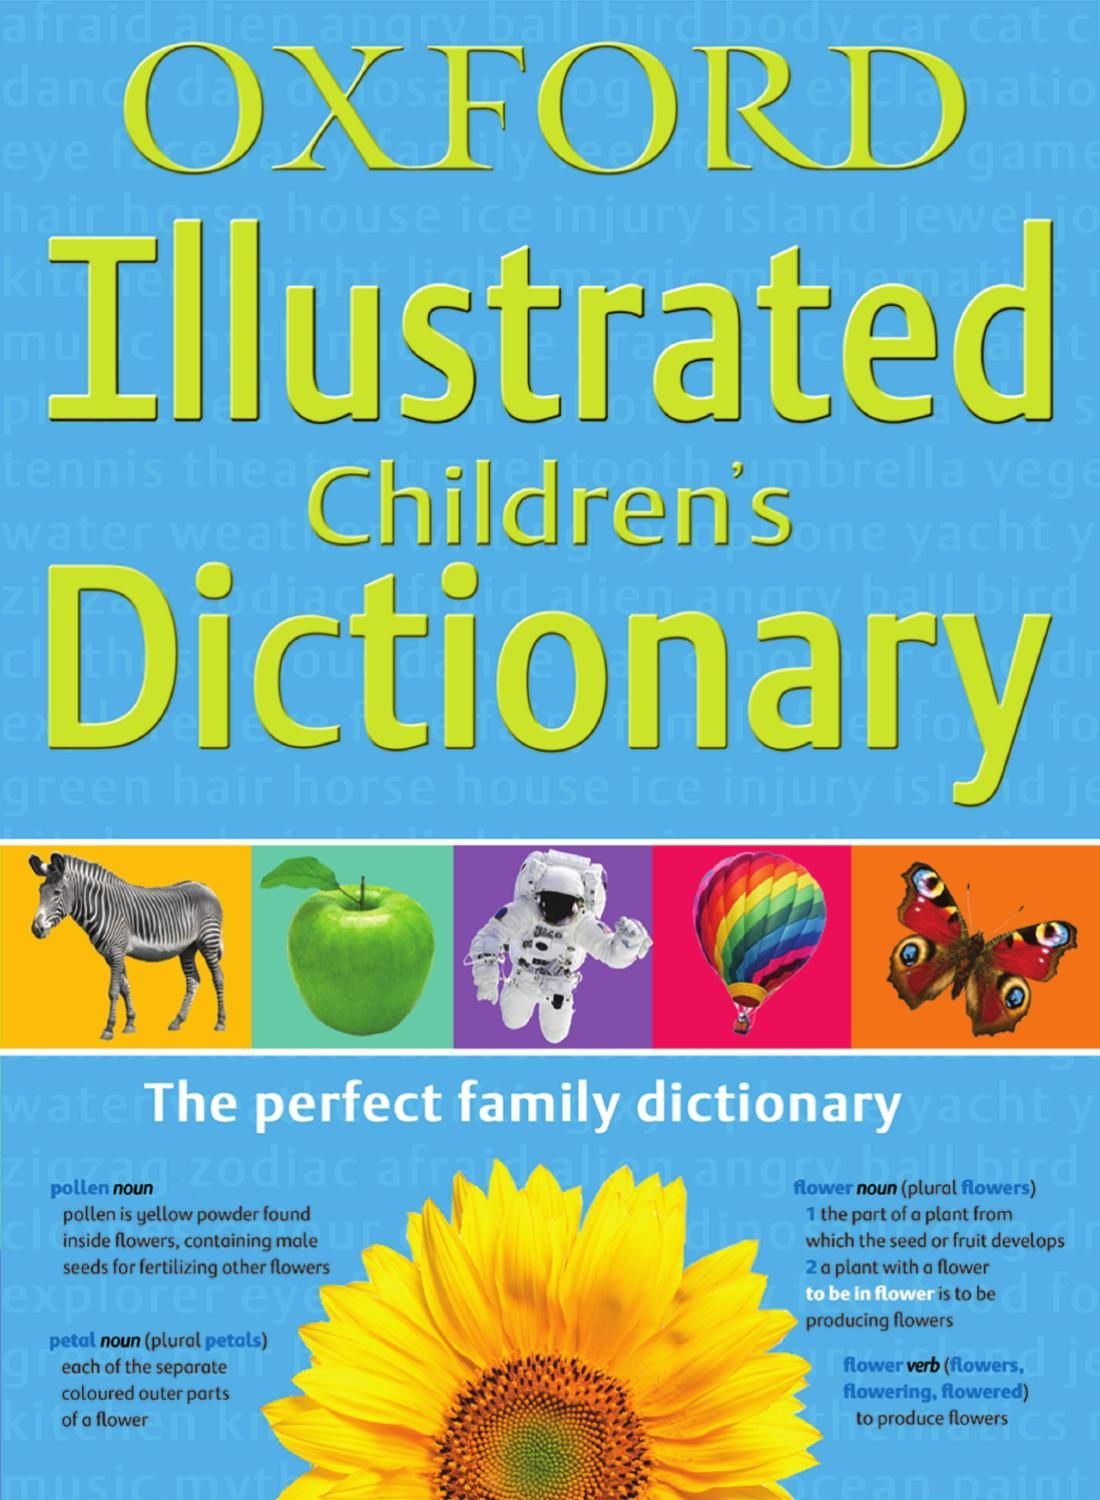 /Childrens_Illustrated_Dictionary   Oxford dictionaries